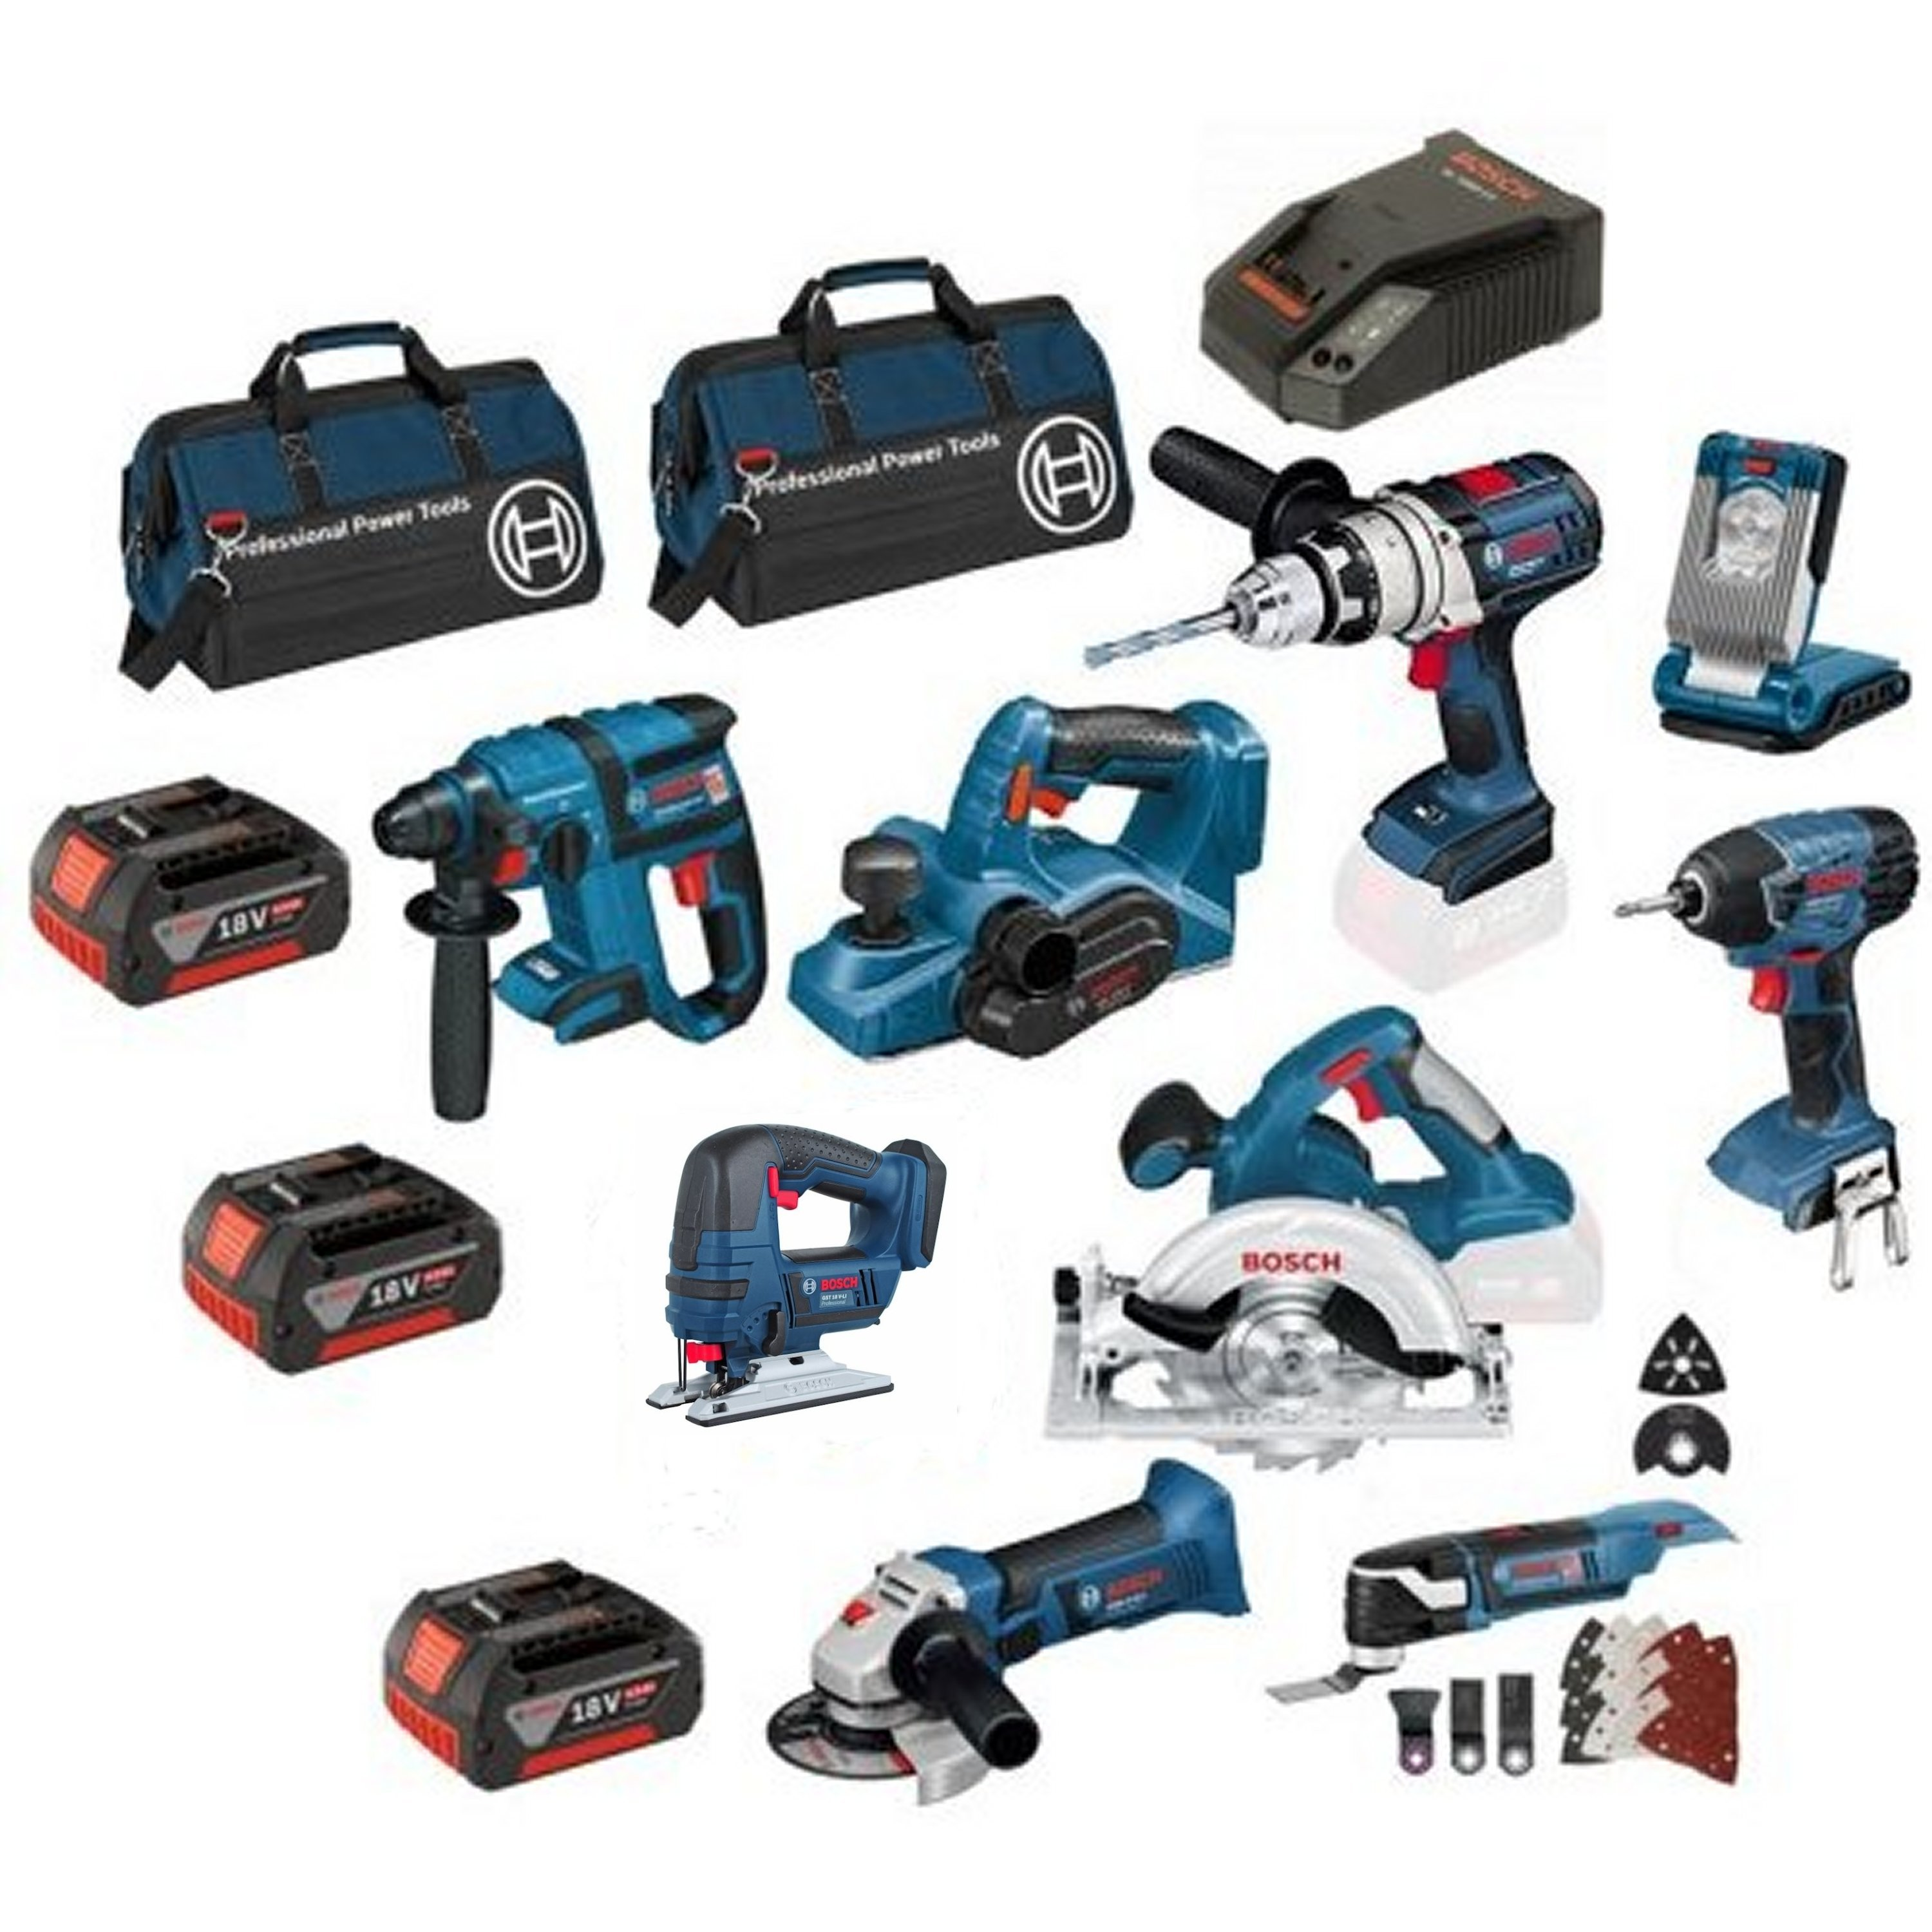 bosch 18v tools. Black Bedroom Furniture Sets. Home Design Ideas